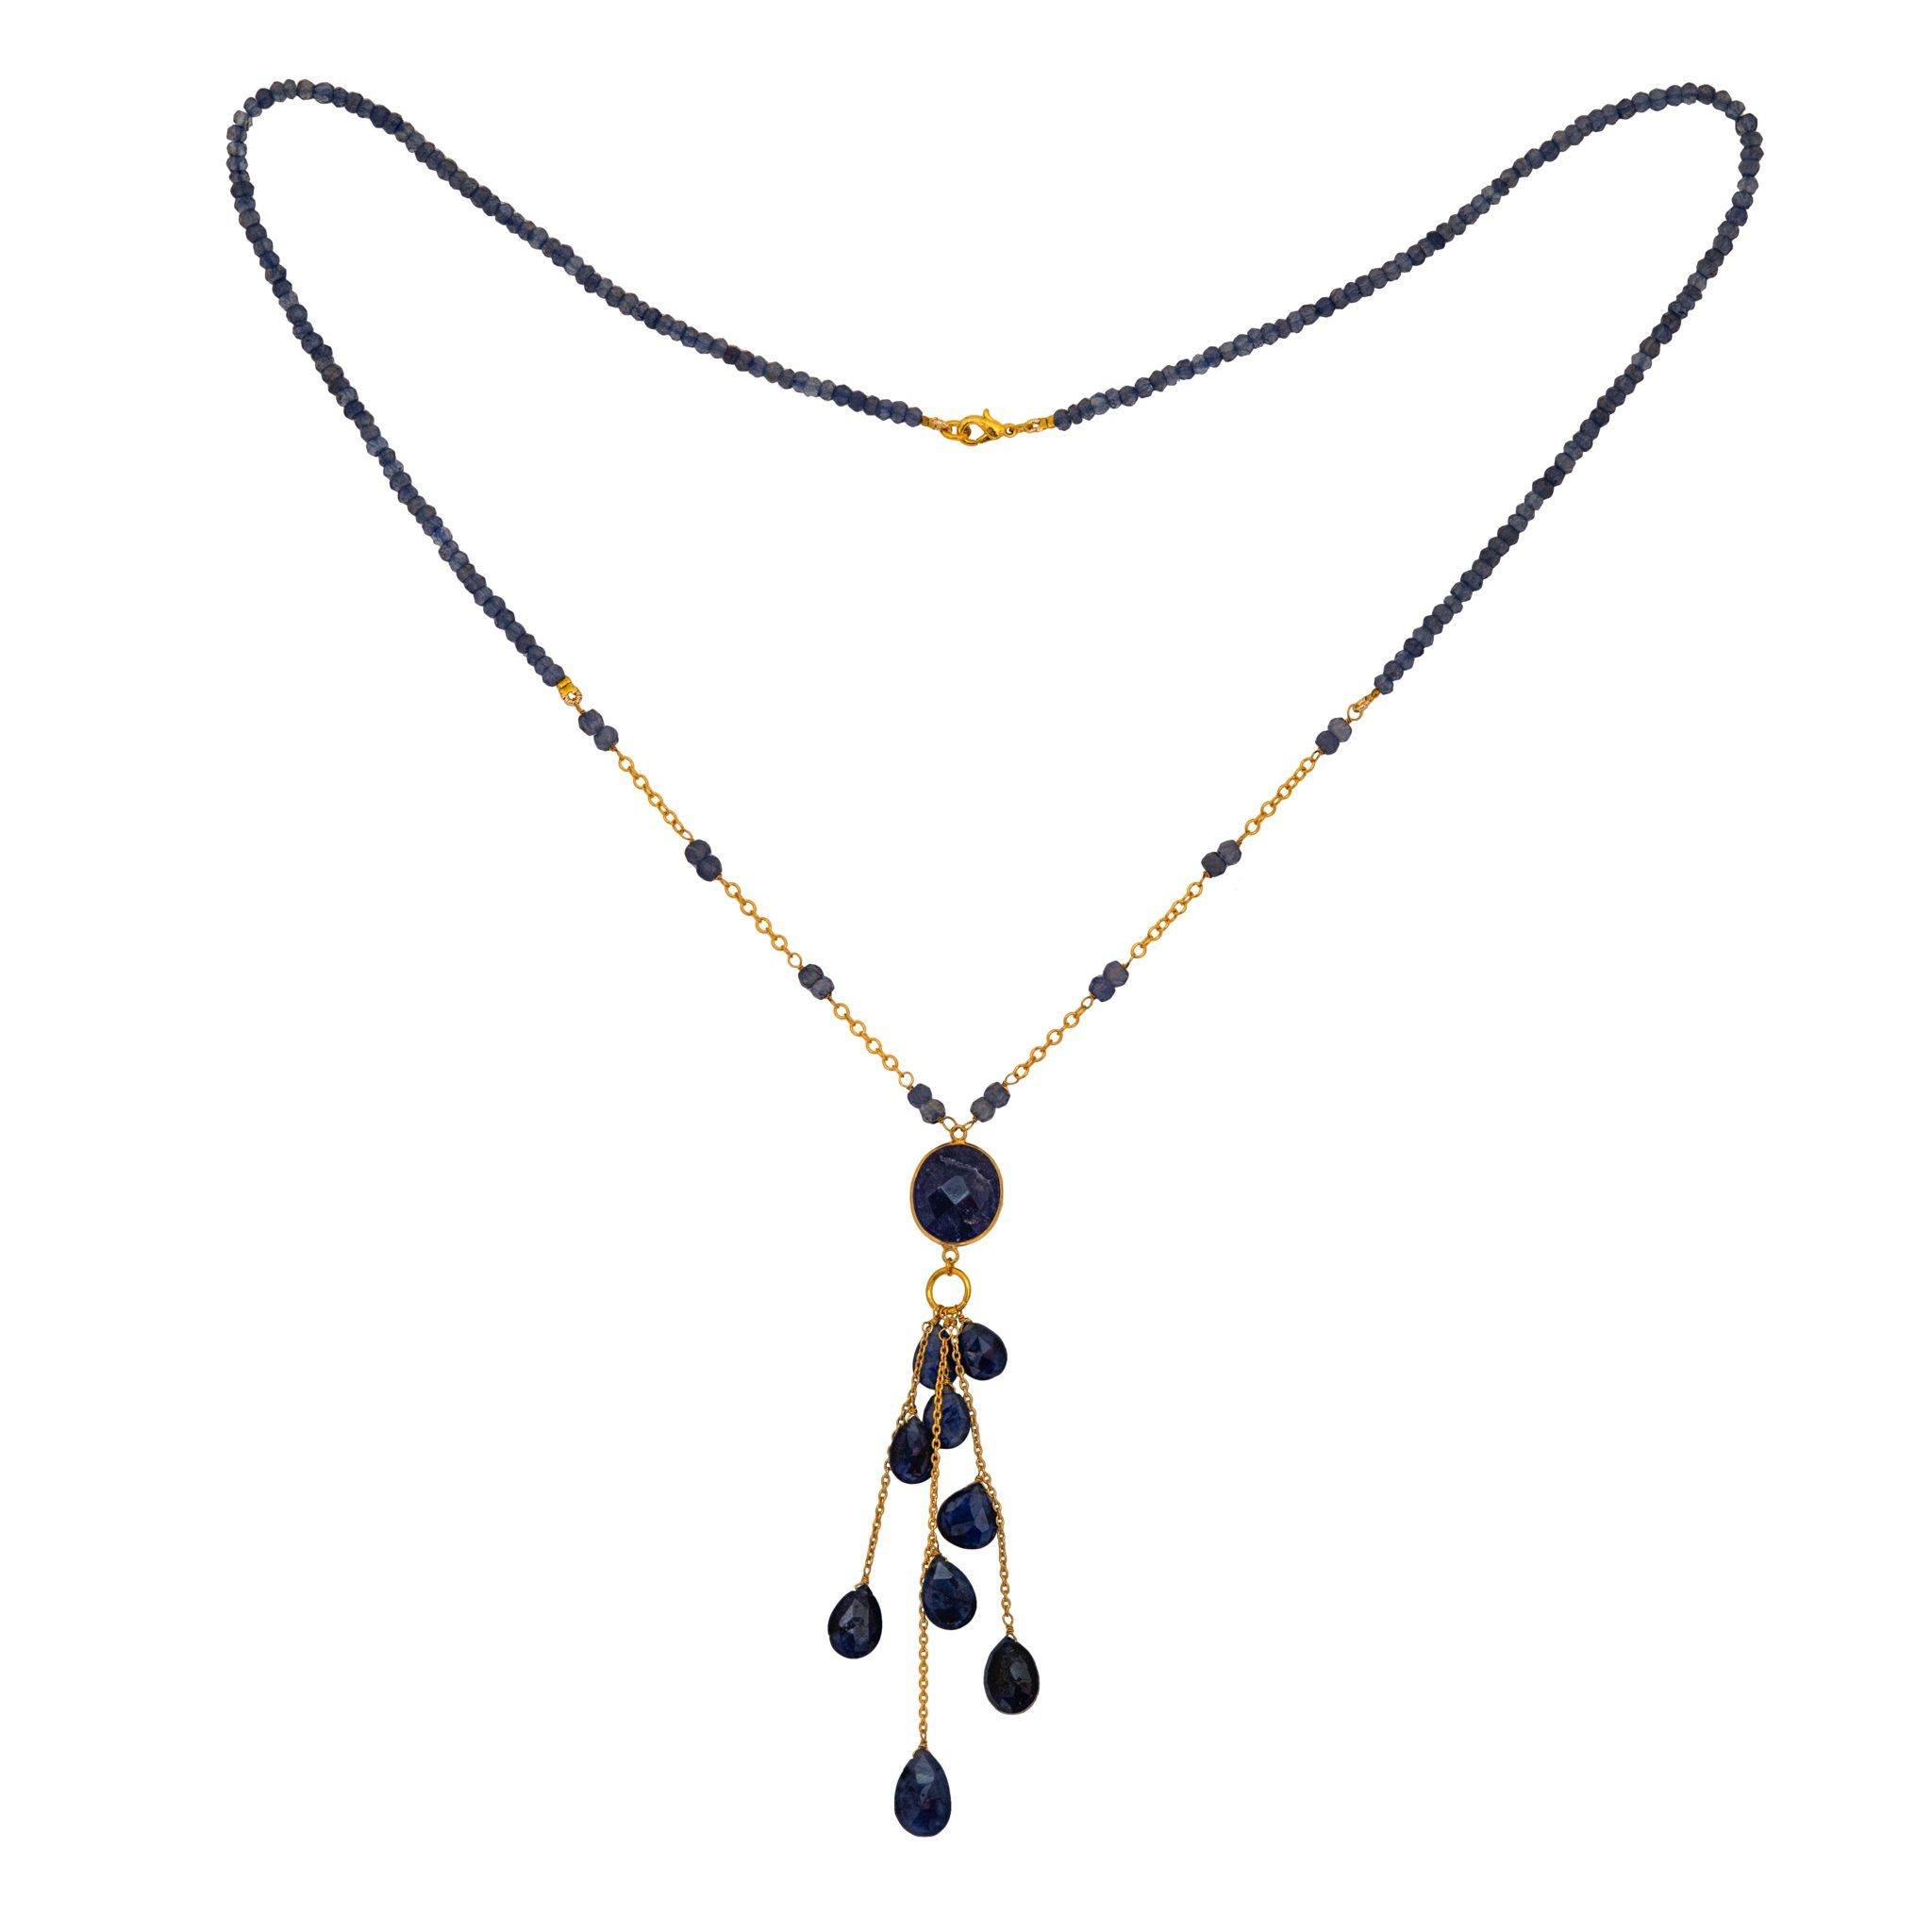 LUZ iolite long necklace with drops - MadamSiam